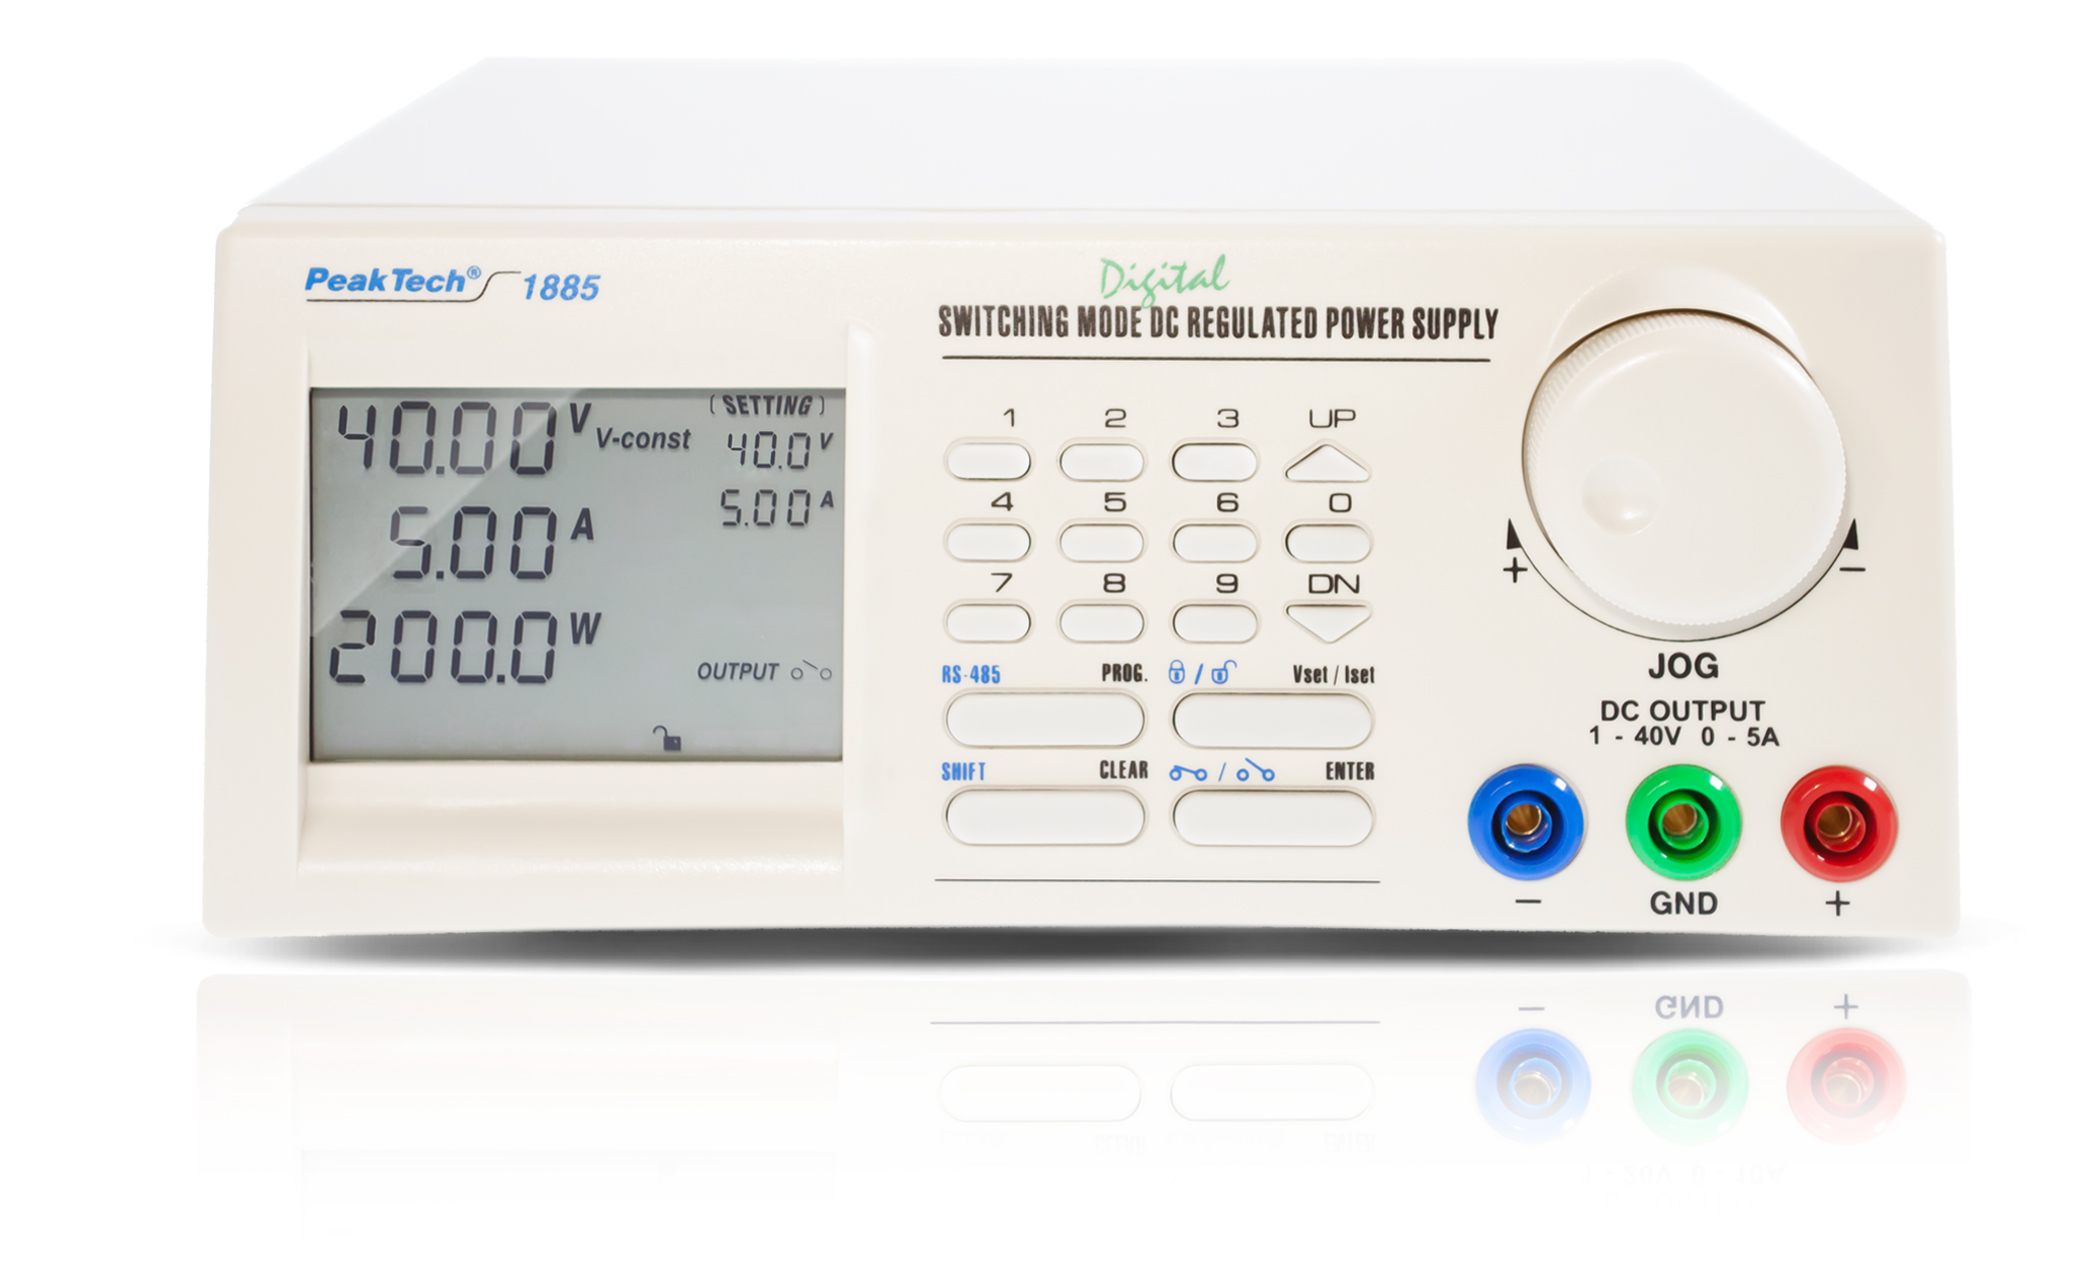 «PeakTech® P 1885» Laboratory power supply DC 1 - 40V/0 - 5A with USB